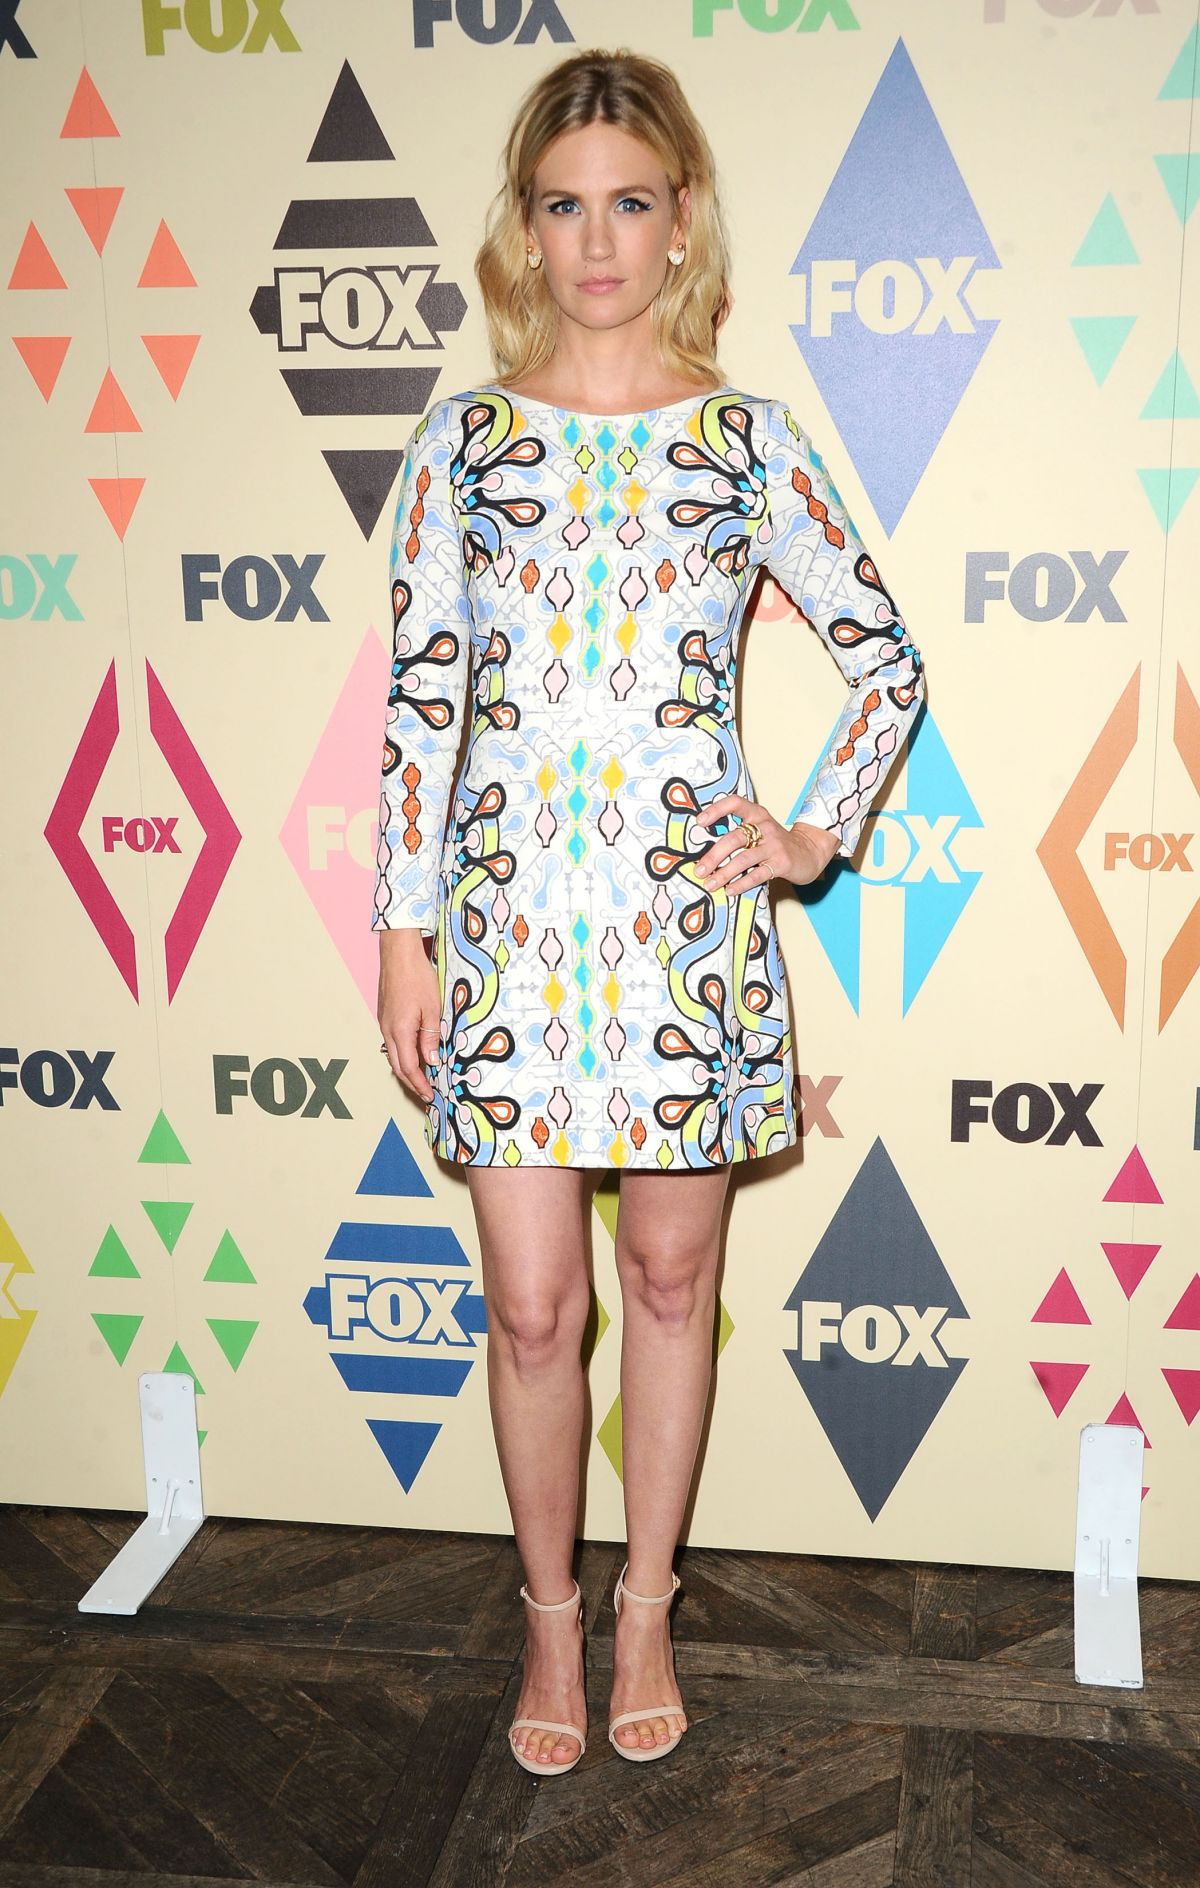 JANUARY JONES at Fox/FX Summer 2015 TCA Party in West Hollywood